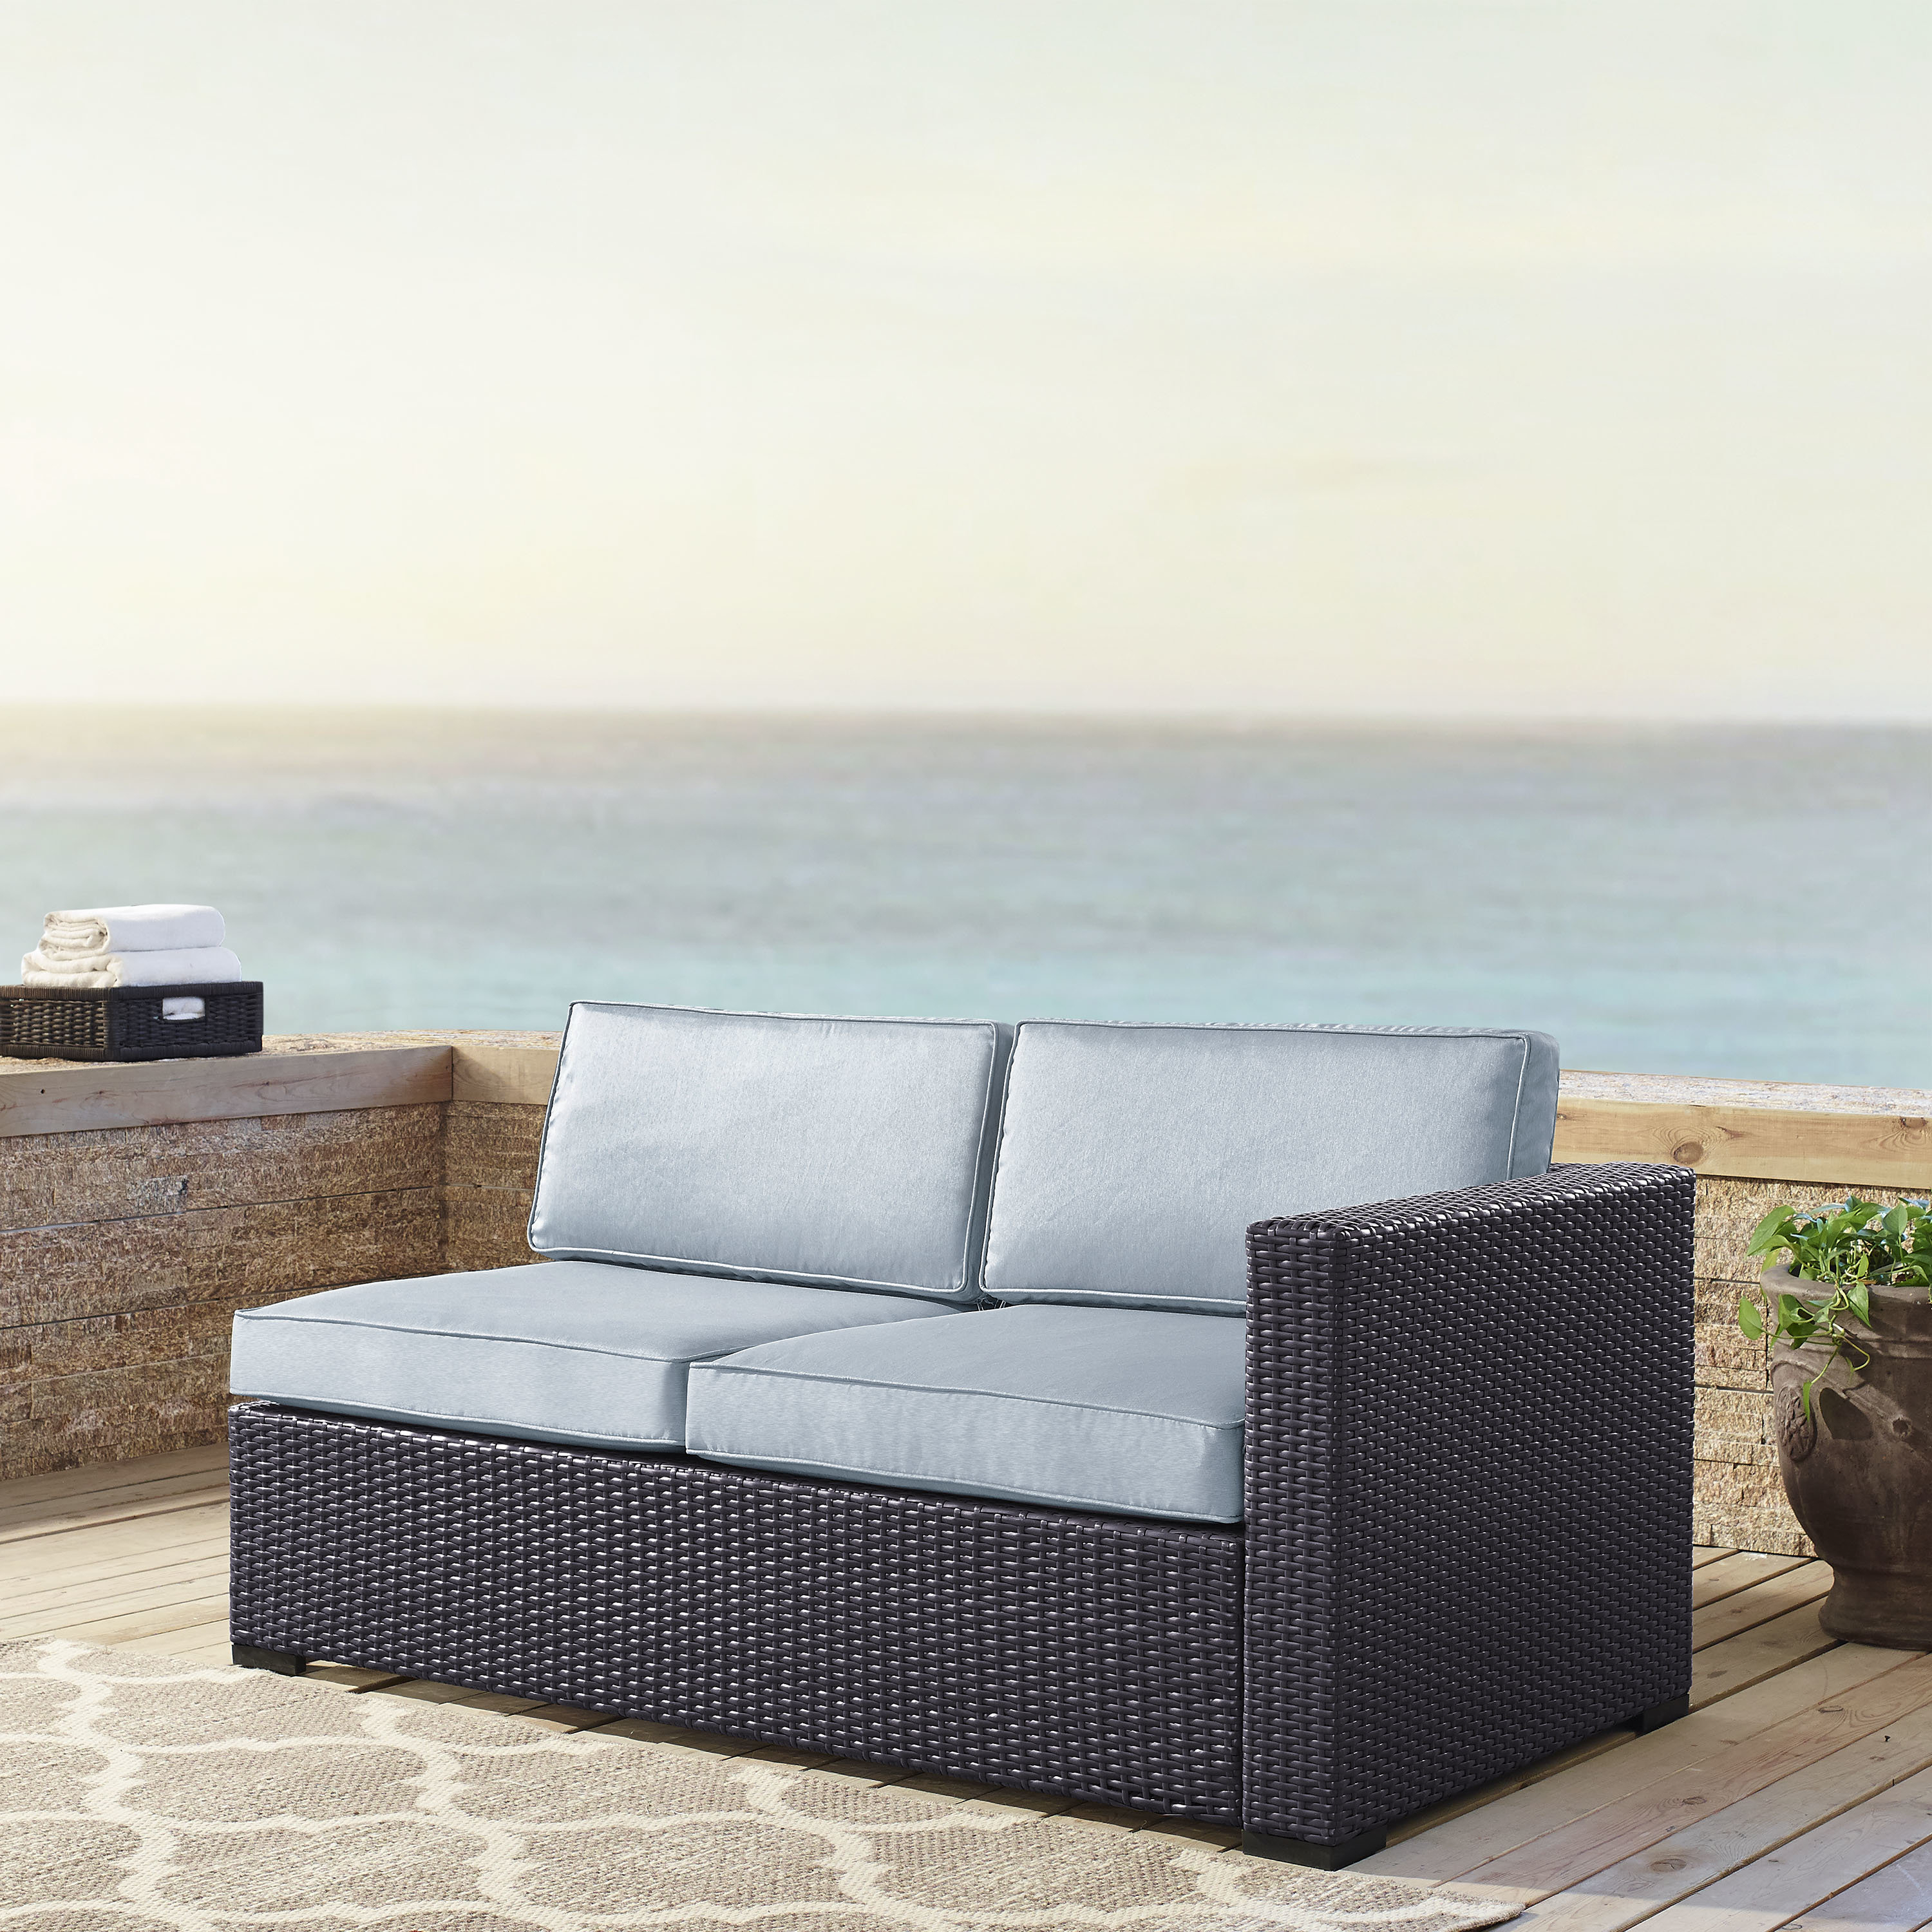 Alburg Loveseats With Cushions Throughout 2019 Seaton Loveseat With Cushions (View 8 of 25)